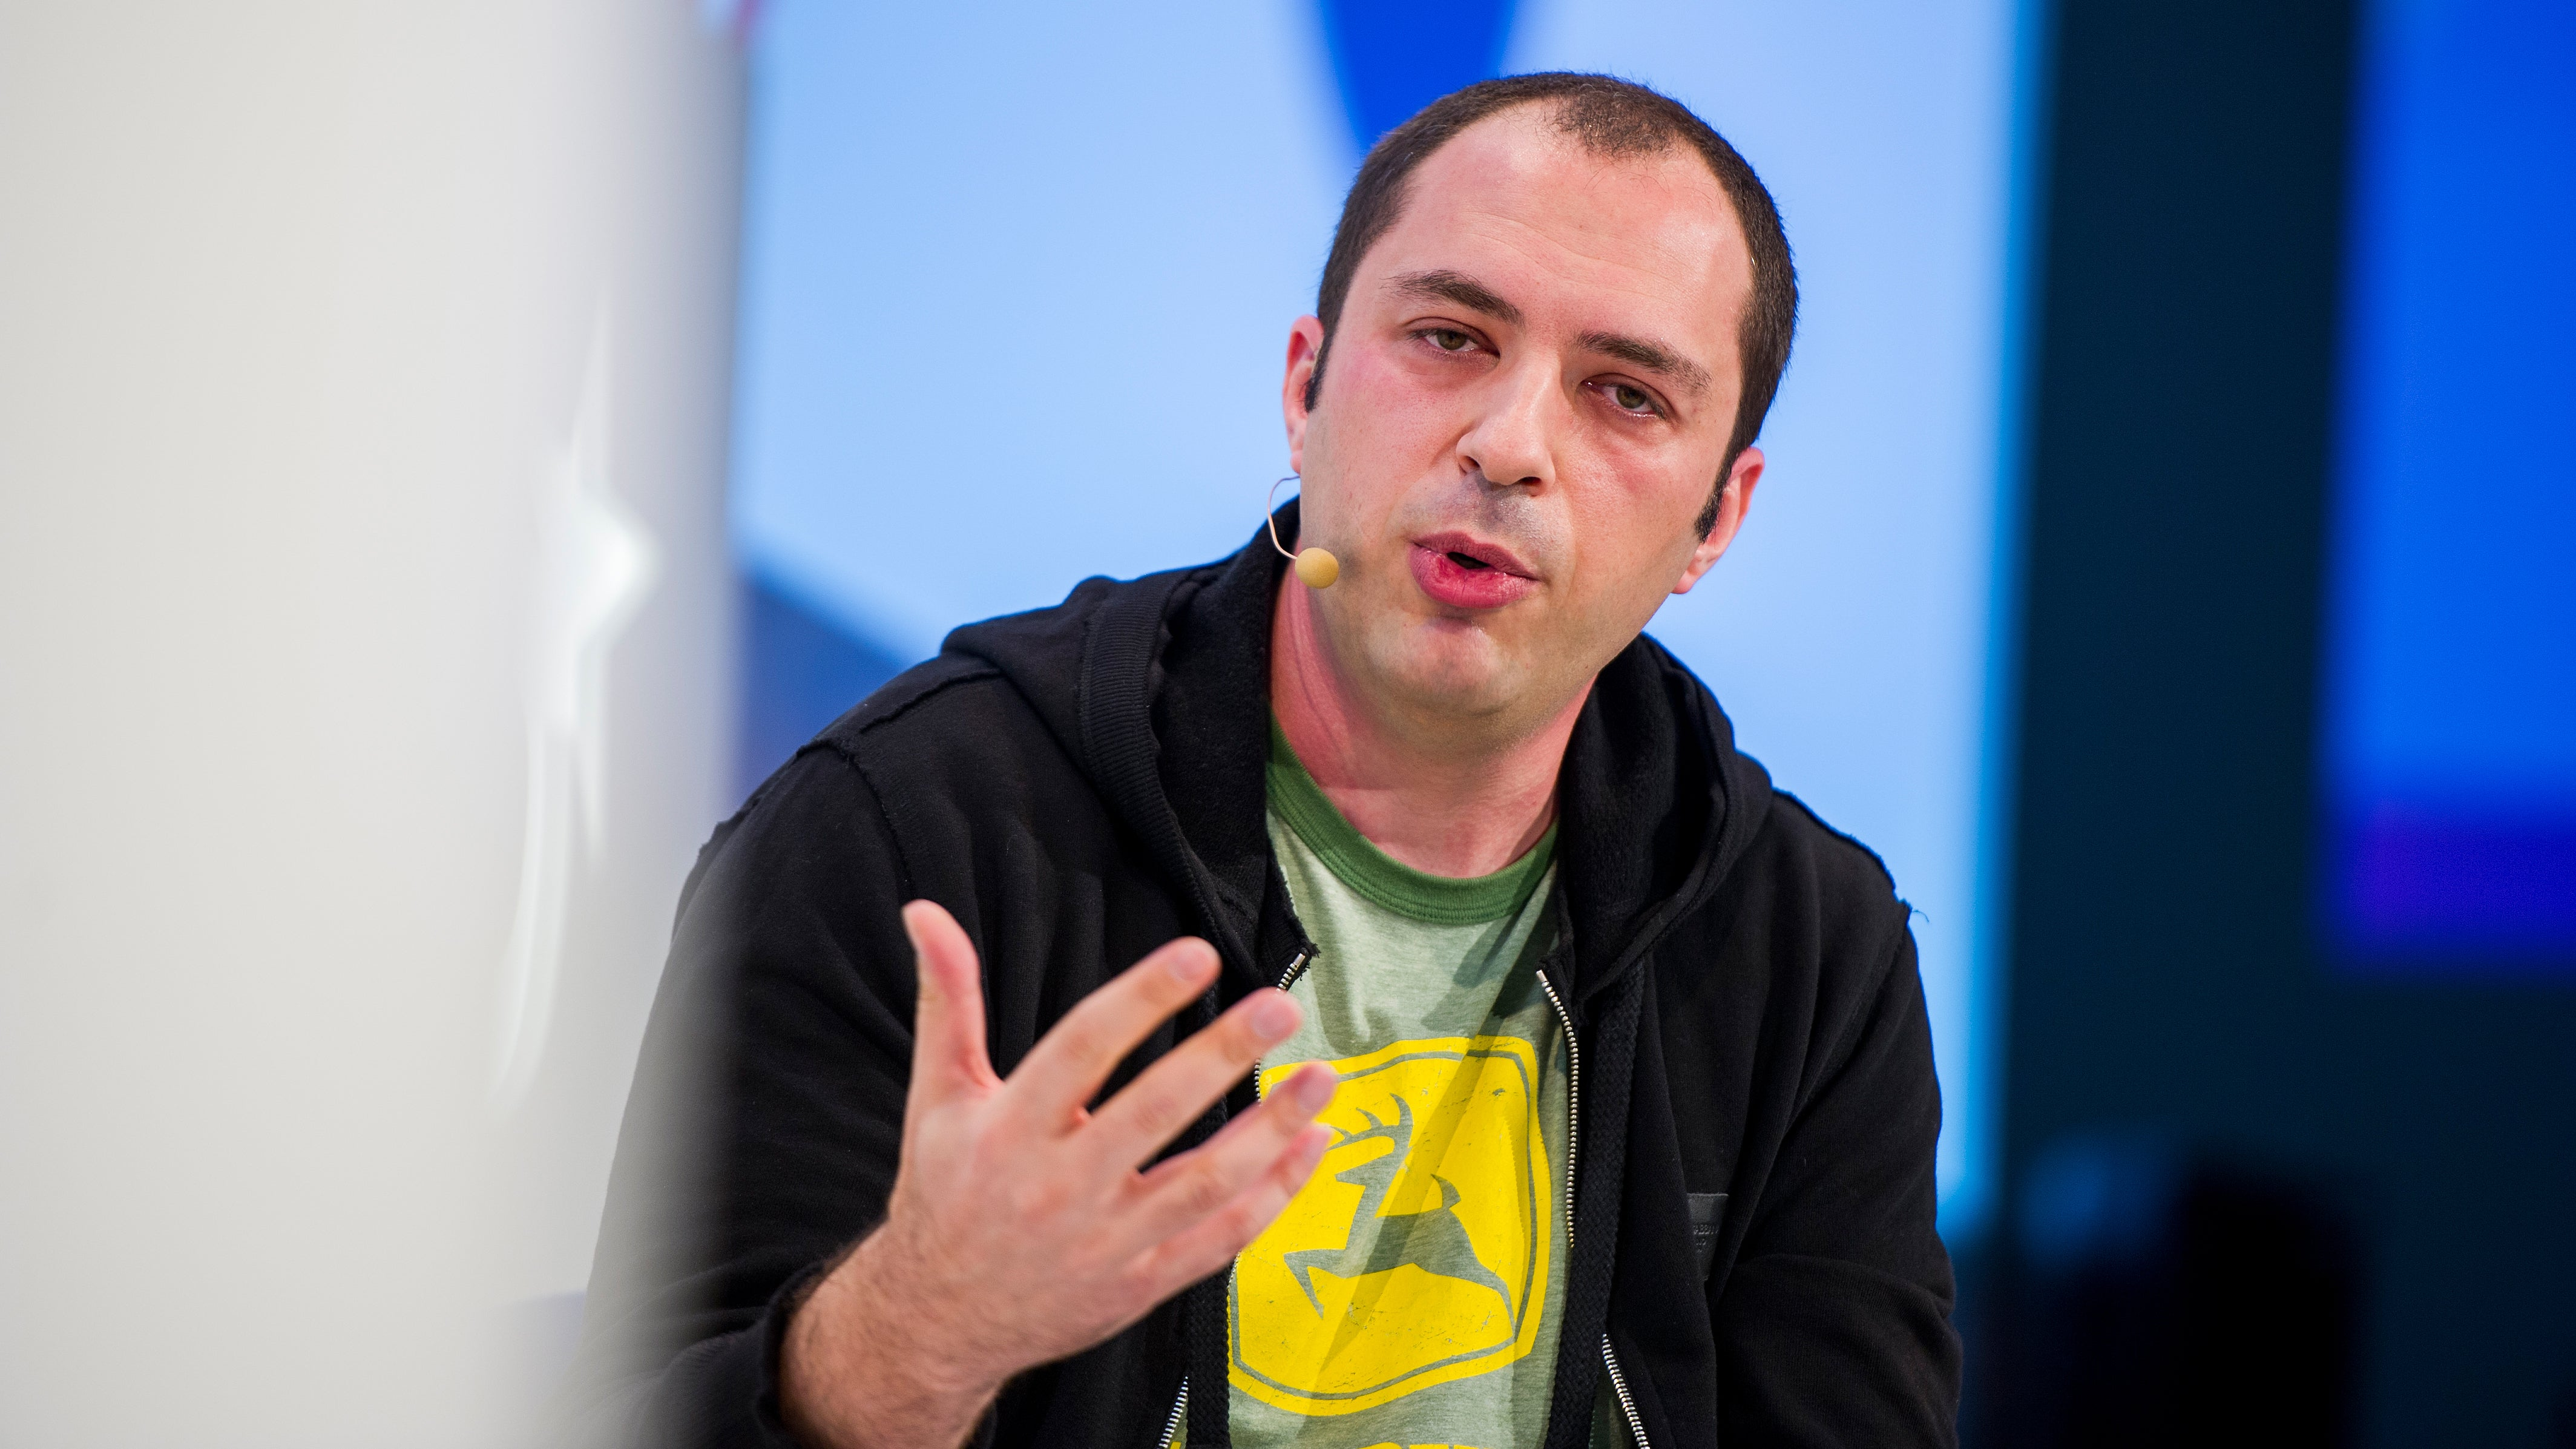 WhatsApp Co-Founder Jan Koum Quits After Internal Battle With Facebook Over User Privacy